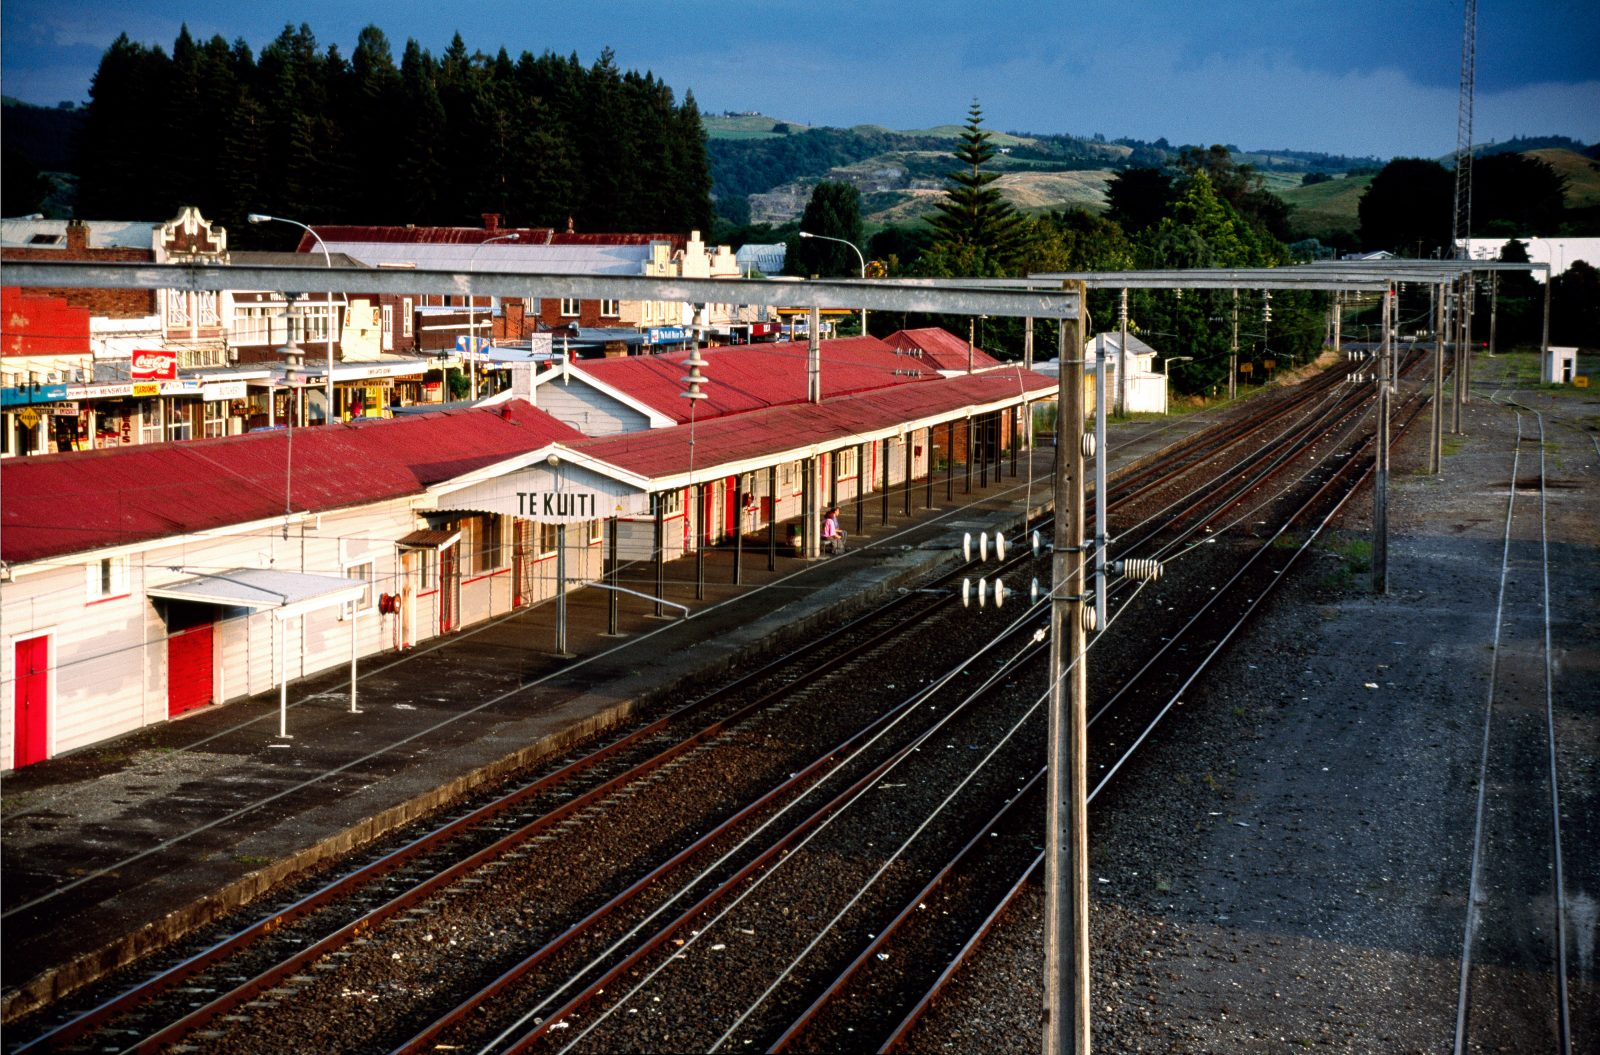 Bastion of the King Country. shearing capital of the world. Te Kuiti, like many North Island towns, grew up around the railway. The station was built in 1908—the year the Main Trunk opened—and stands as a classic of its kind, even down to the the bent rails used as verandah posts. Gantries bearing high voltage AC wires for the recent Main Trunk electrification now clutter a sky once filled with the snort and smoke of steam locomotives.